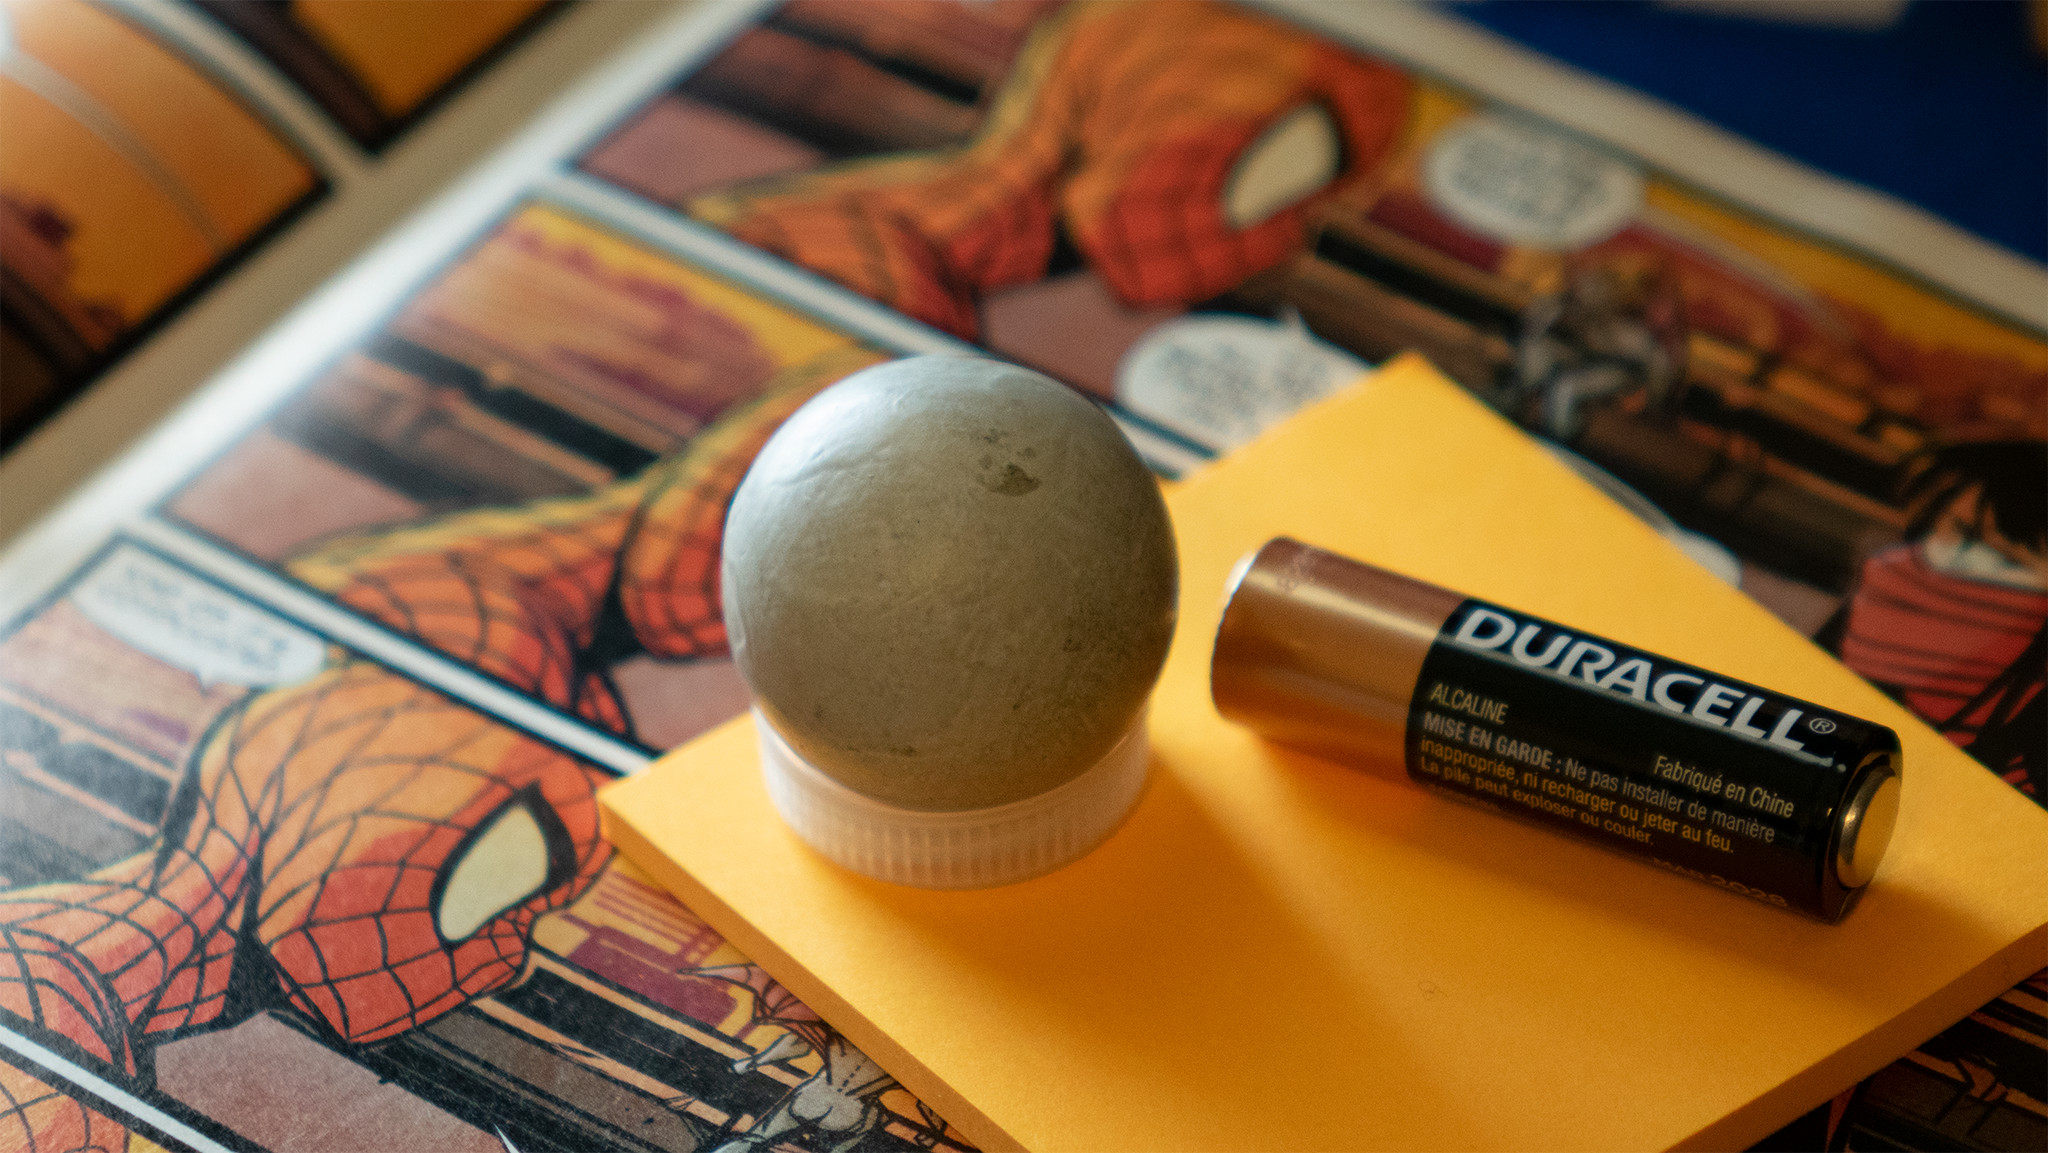 Grey ball, used to match key light. Captures light position and color.